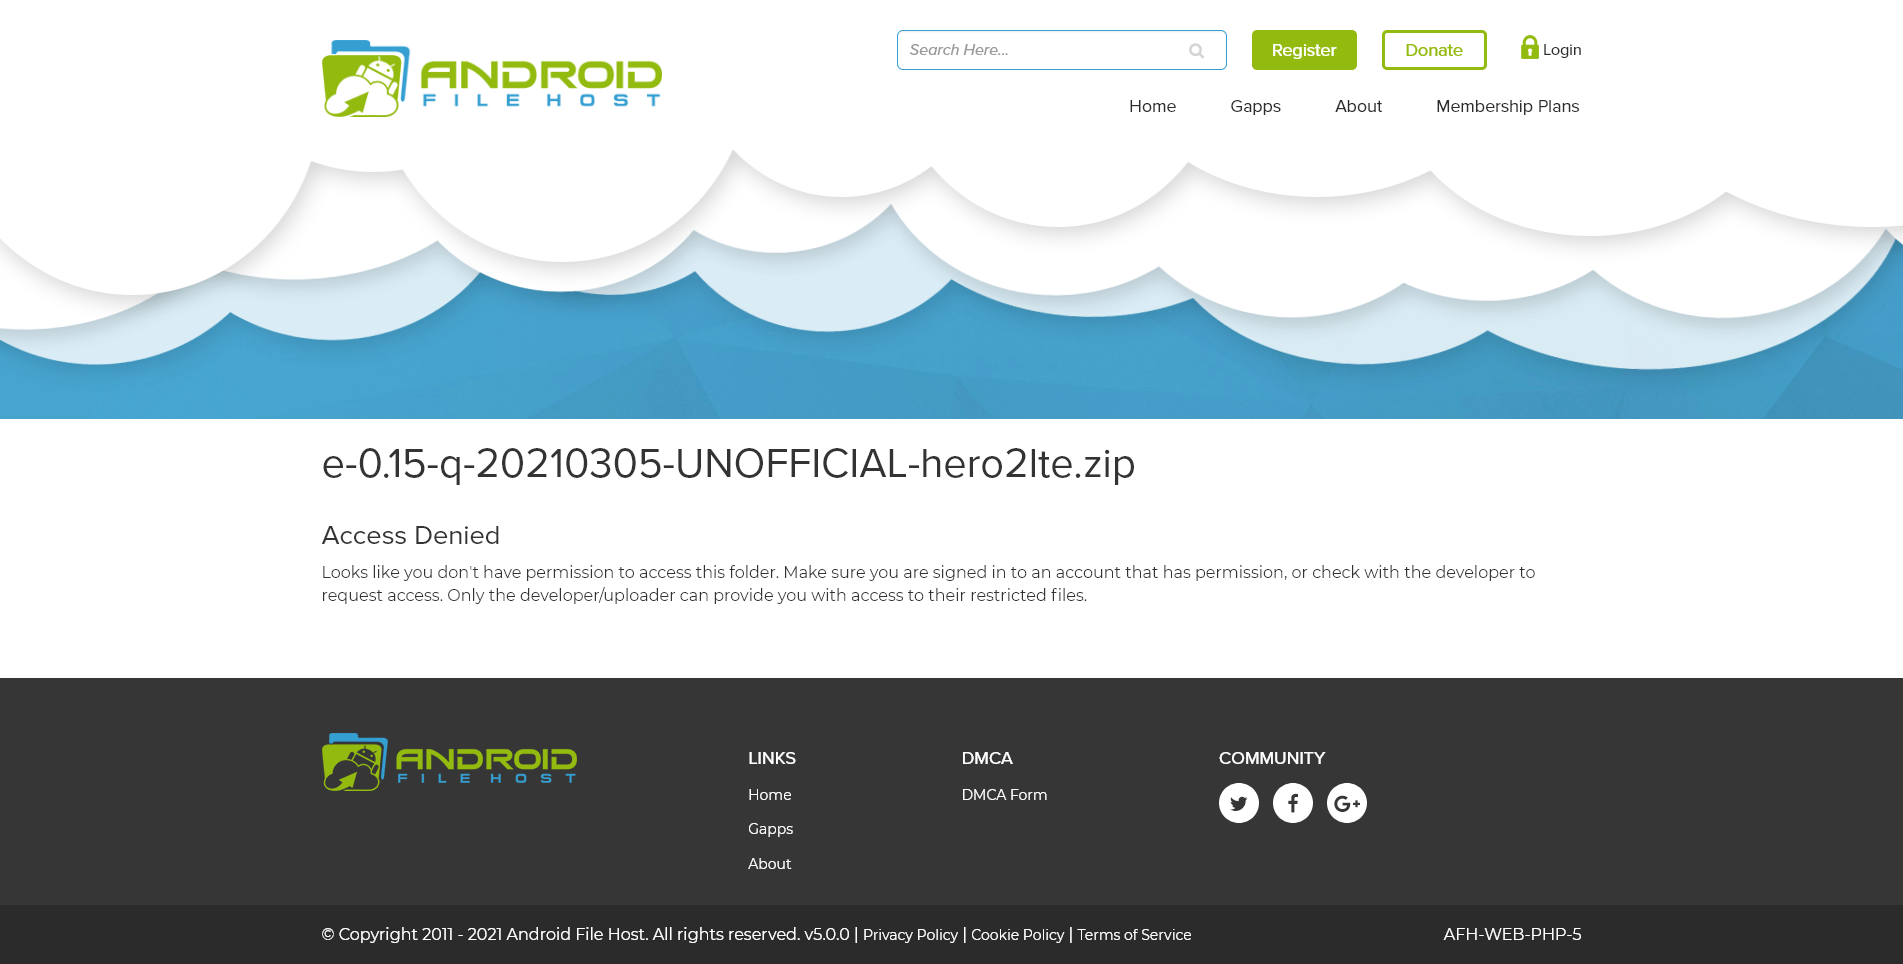 androidfilehost-e-0 15-q-20210305-UNOFFICIAL-hero2lte